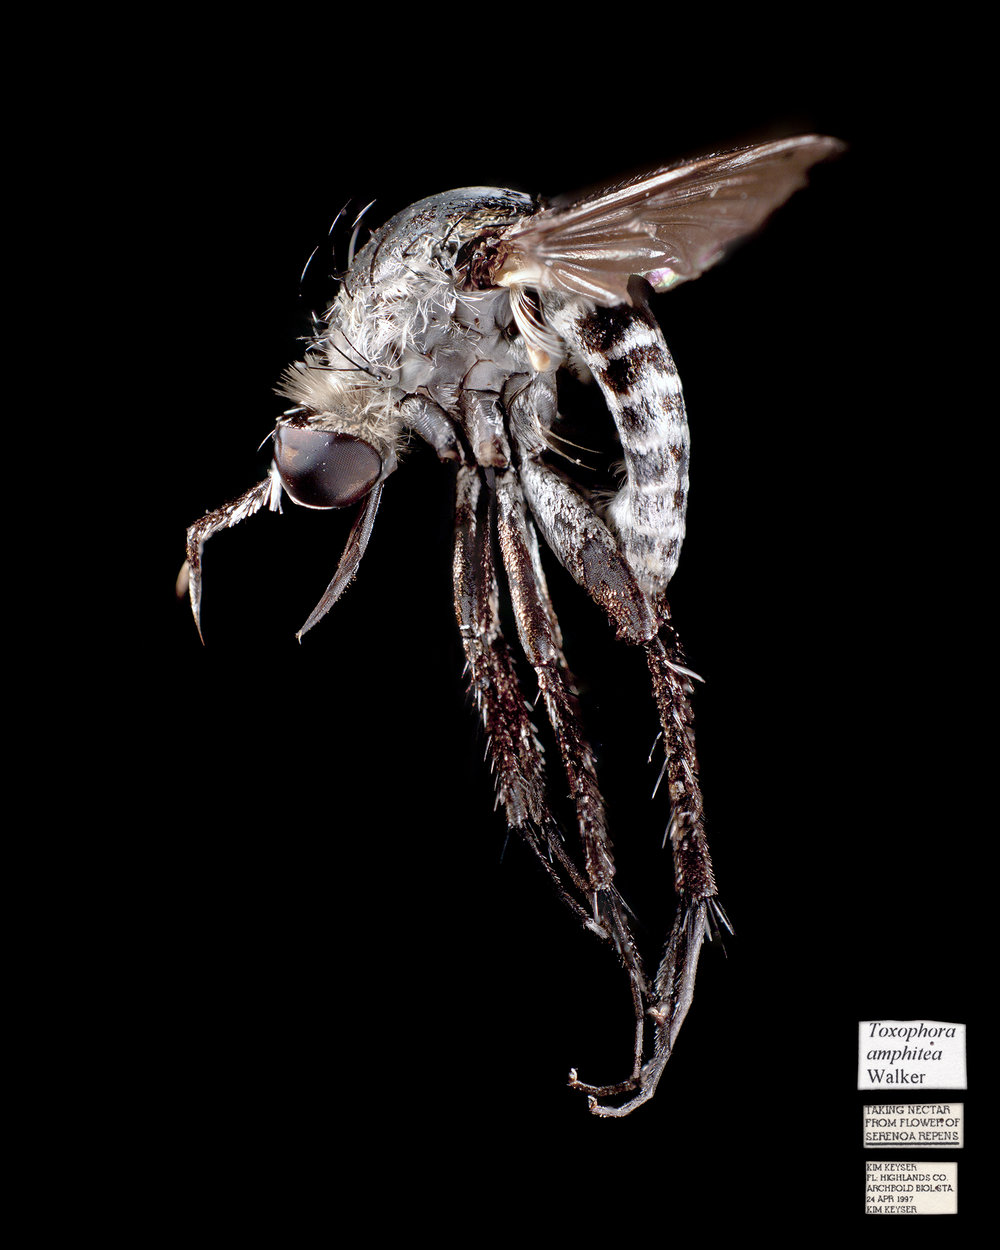 This Hunchback Fly, along with specimens from over 300 other insect species have been collected while visiting Saw Palmetto flowers at Archbold Biological Station.